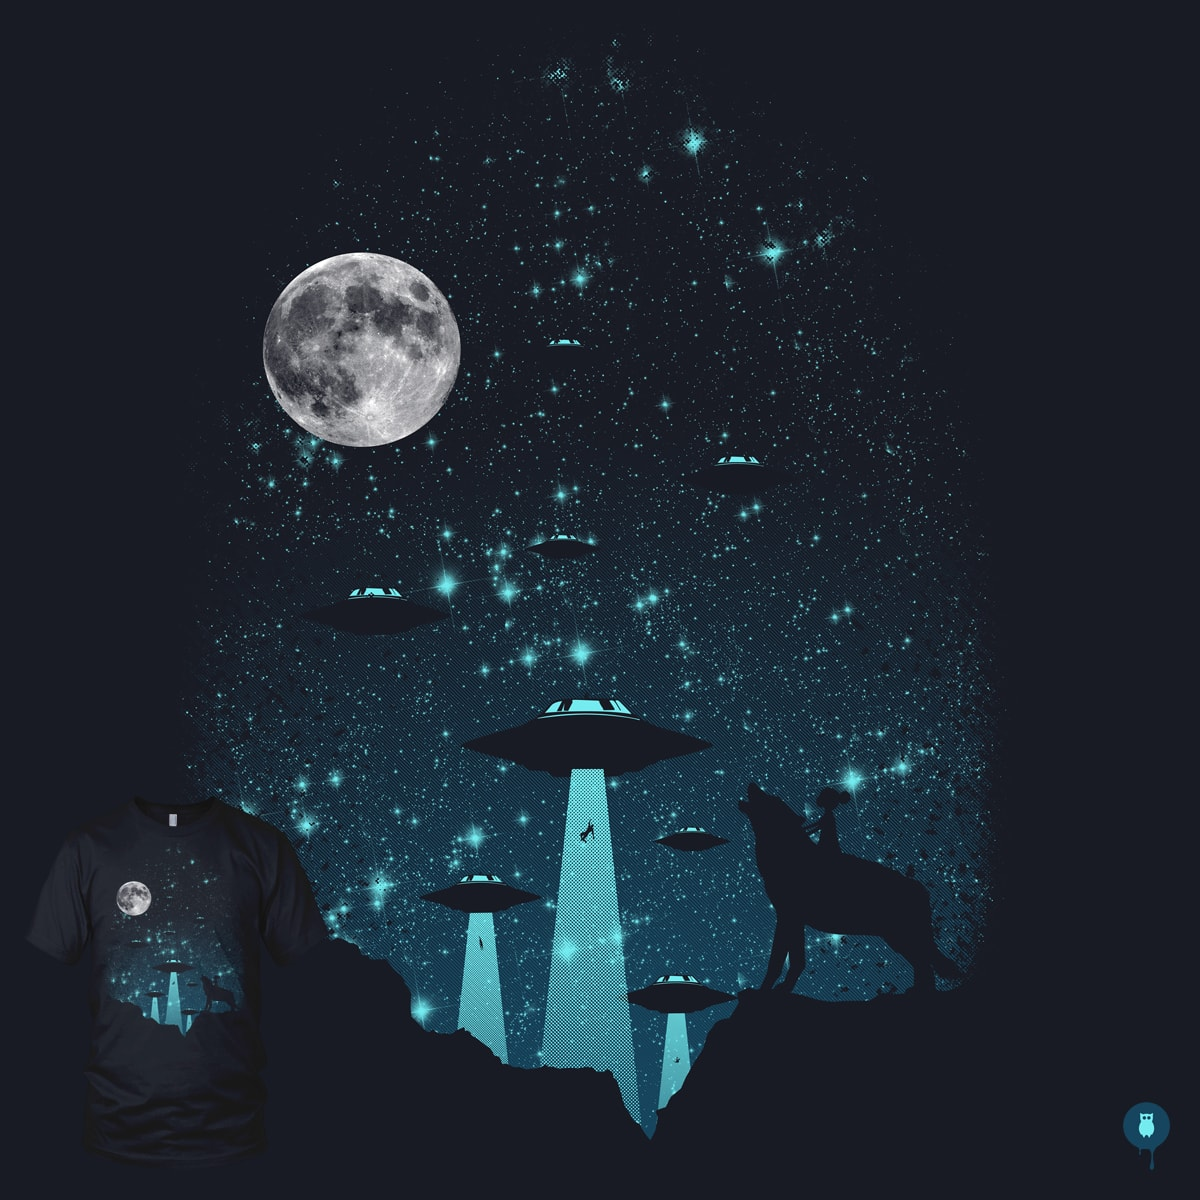 Contact by filiskun on Threadless